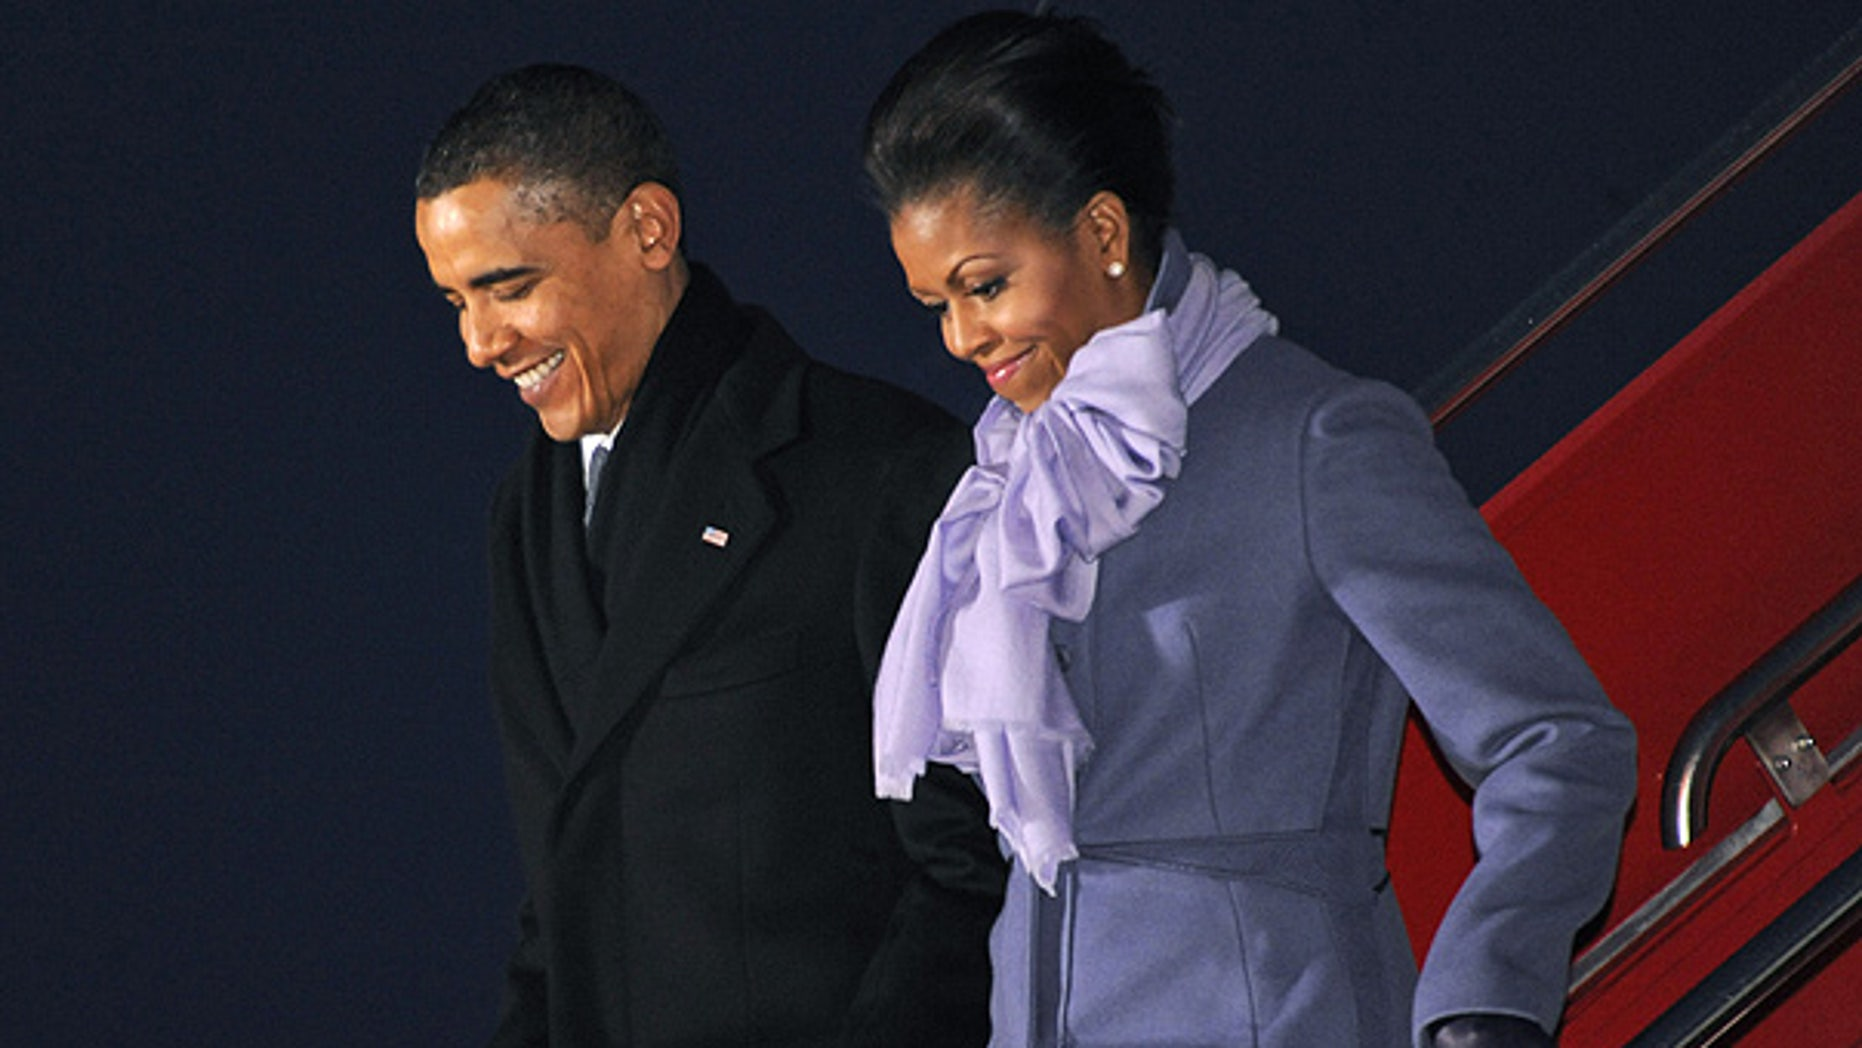 Dec. 10: President Obama and first lady Michelle arrive at Gardermoen Airport in Oslo, Norway. (AP)